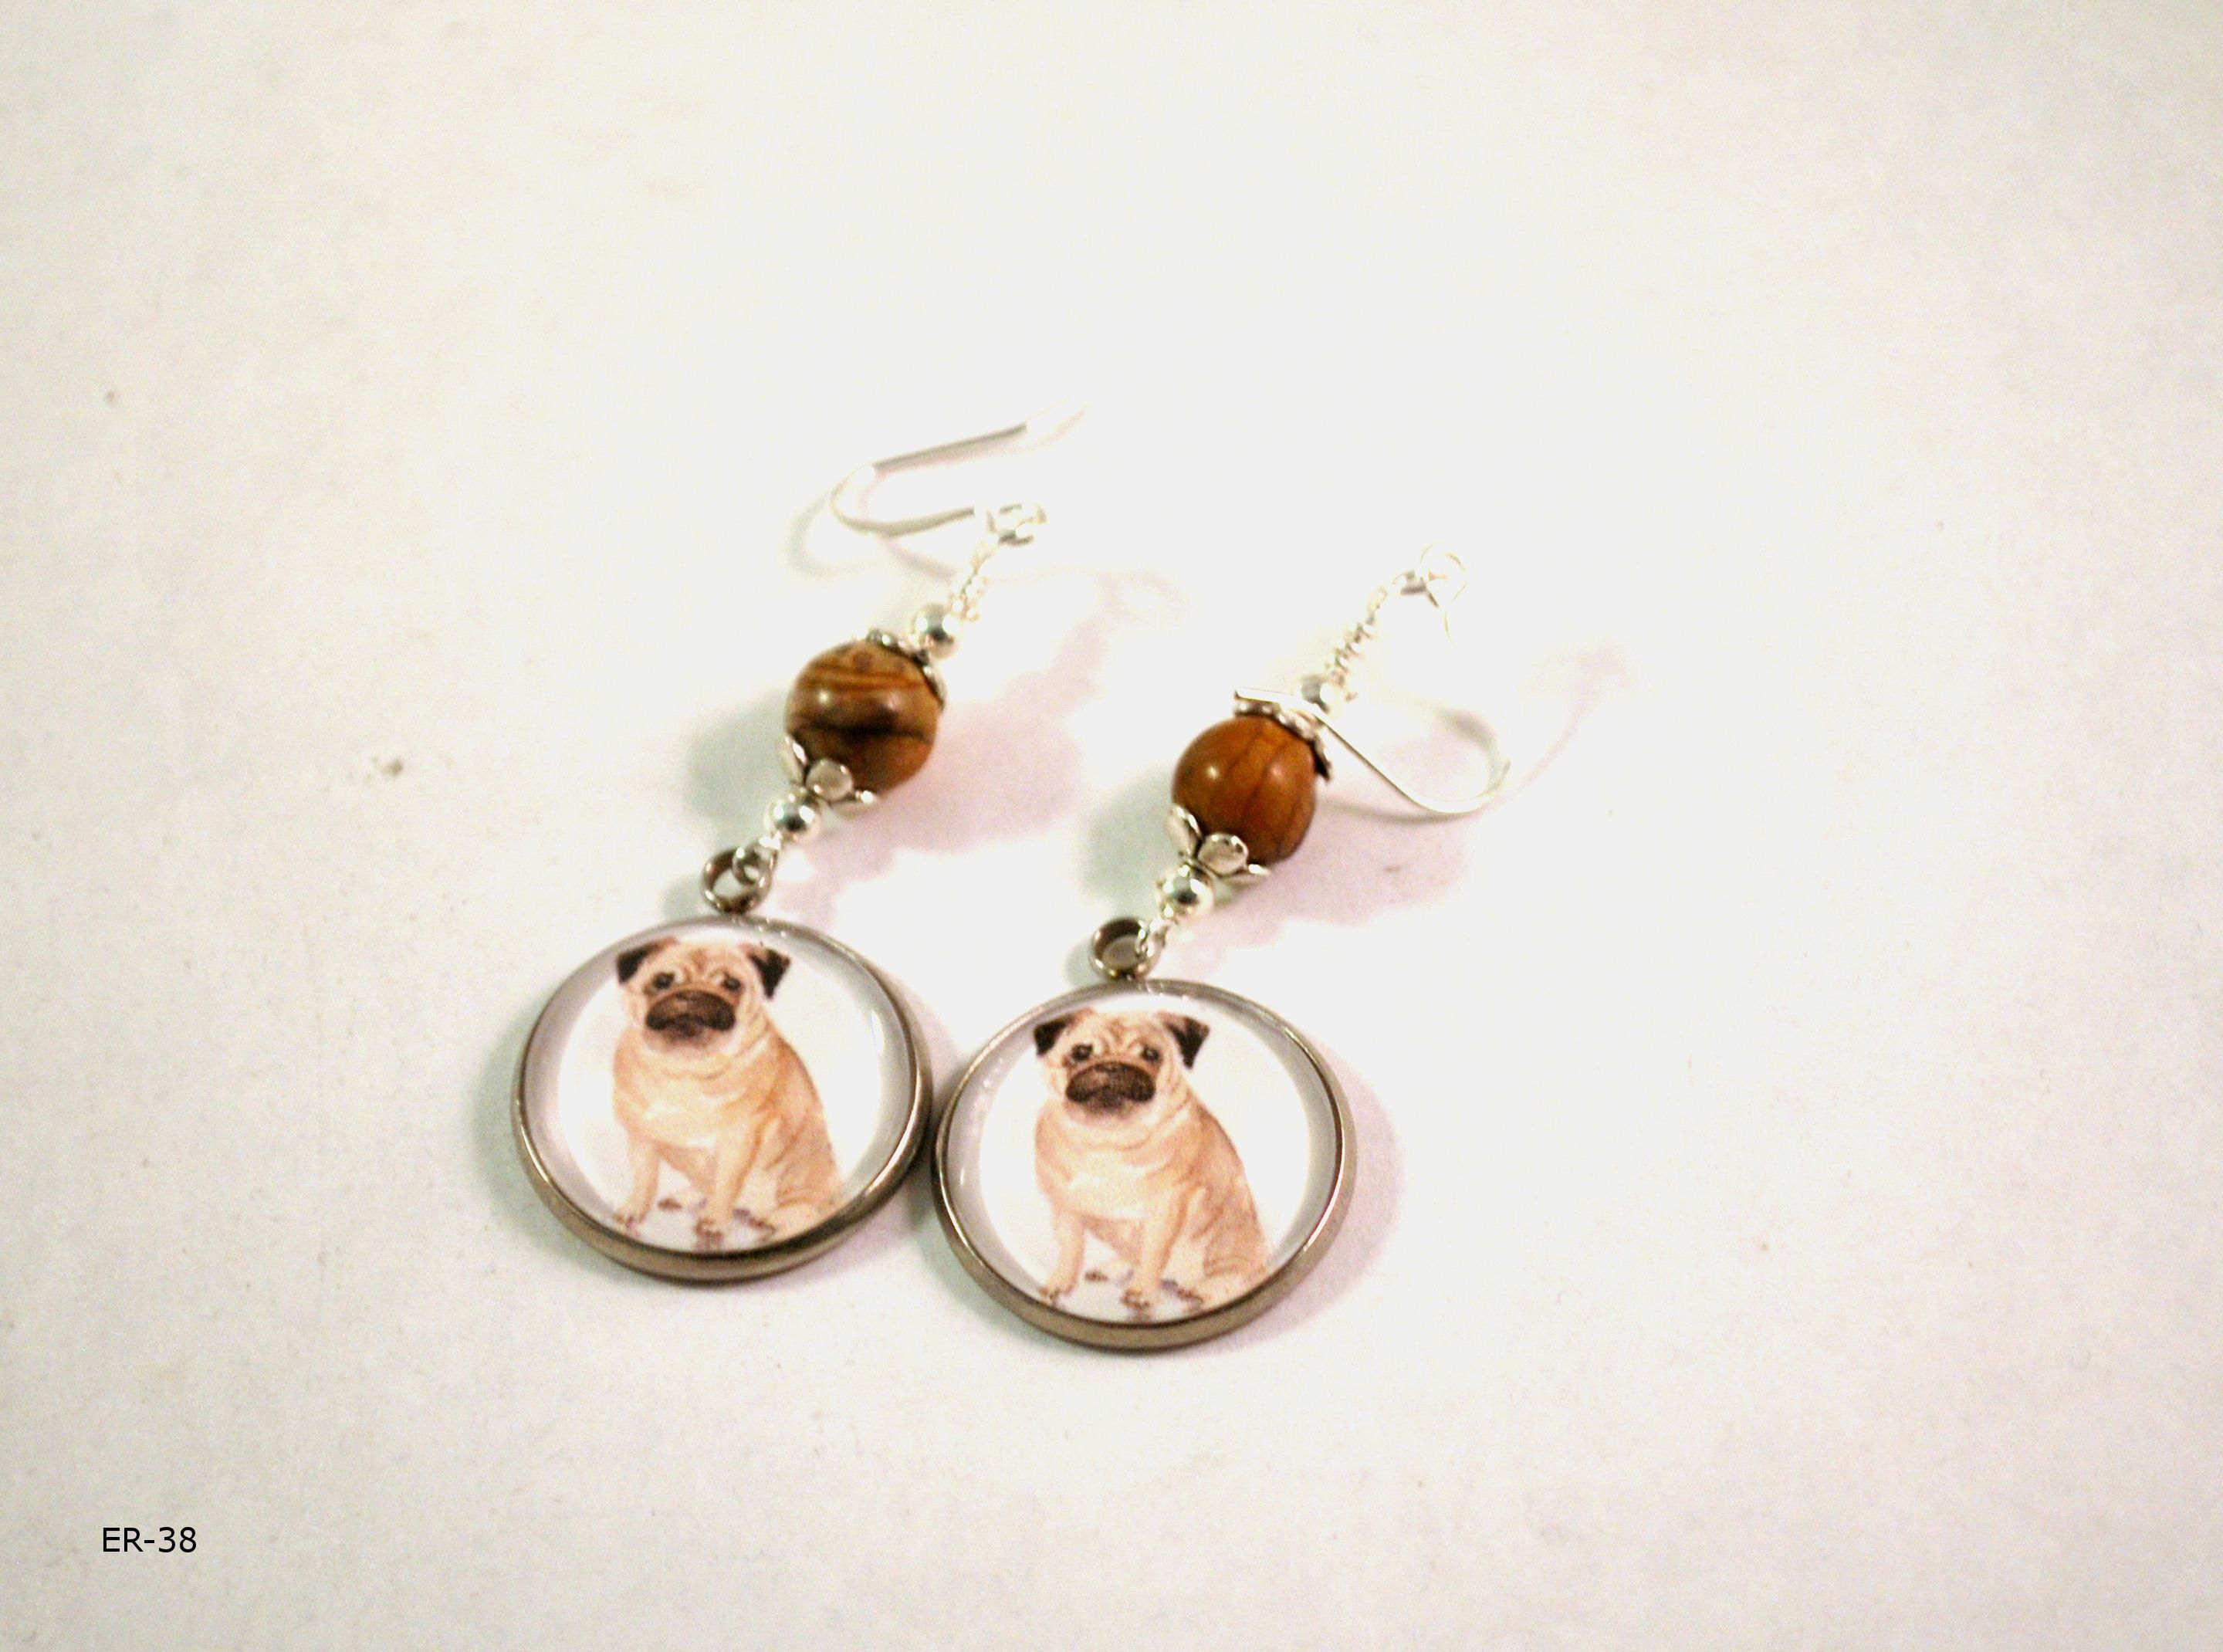 Pug Dog Earrings for Women, Handmade with Jasper Gemstones